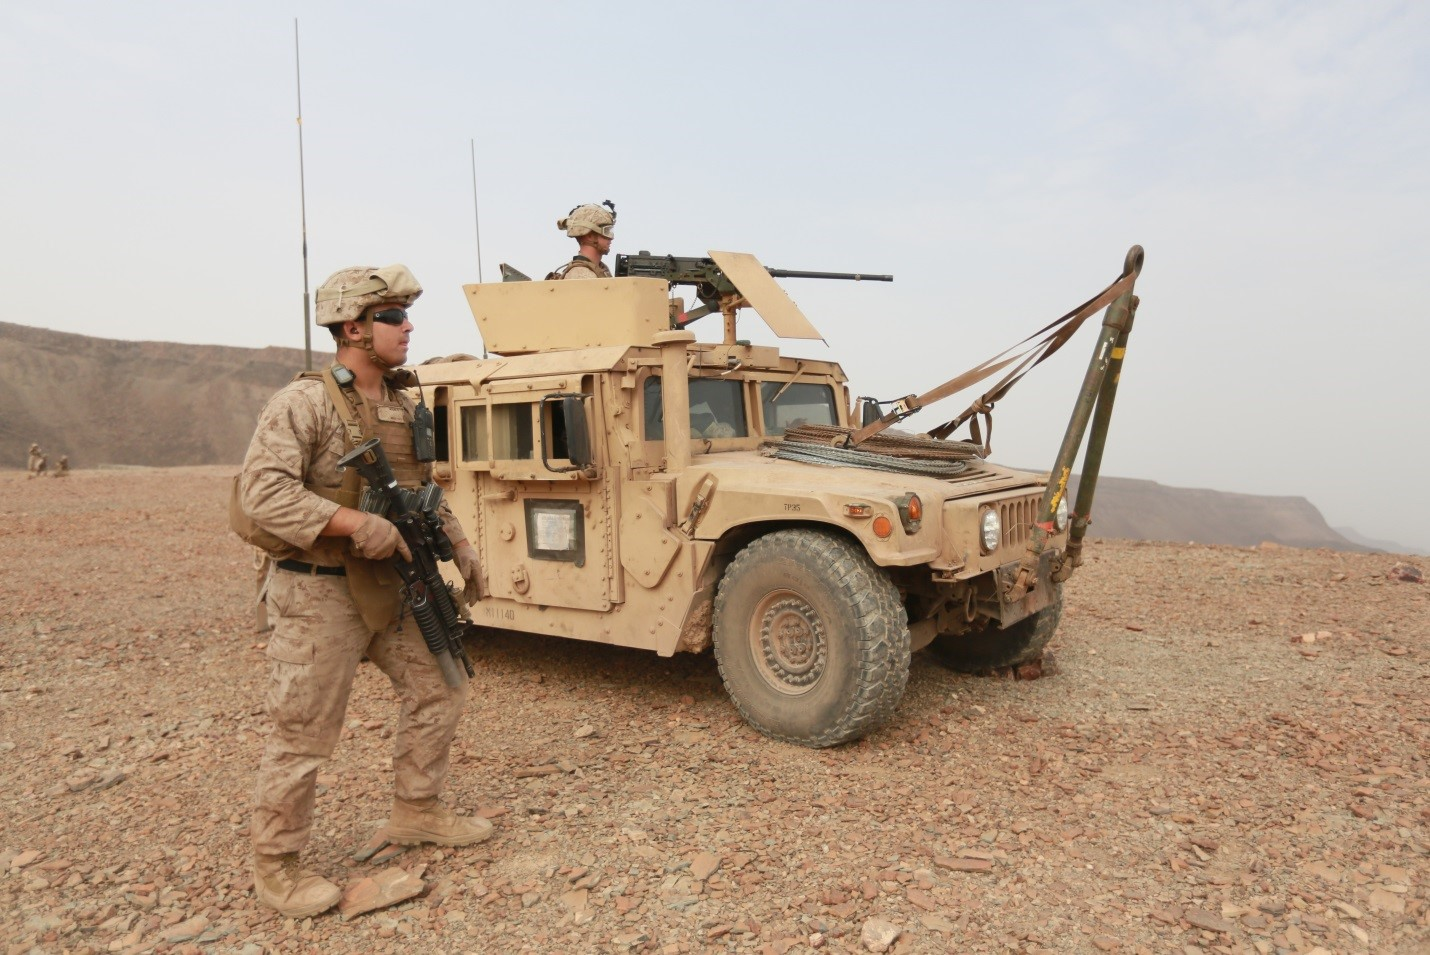 150728-M-ZZ999-148   ARTA BEACH, Djibouti (July 28, 2015) U.S. Marines with Combined Anti-Armor Team 1, Weapons Company, Battalion Landing Team 3rd Battalion, 1st Marine Regiment, 15th Marine Expeditionary Unit, set up a support-by-fire position during sustainment training. Elements of the 15th MEU are ashore in Djibouti for sustainment training to maintain and enhance the skills they developed during their pre-deployment training period. The 15th MEU is currently deployed in support of maritime security operations and theater security cooperation efforts in the U.S. 5th and 6th Fleet areas of operation. (U.S. Marine Corps photo by Gunnery Sgt. Eddy Arce/Released)